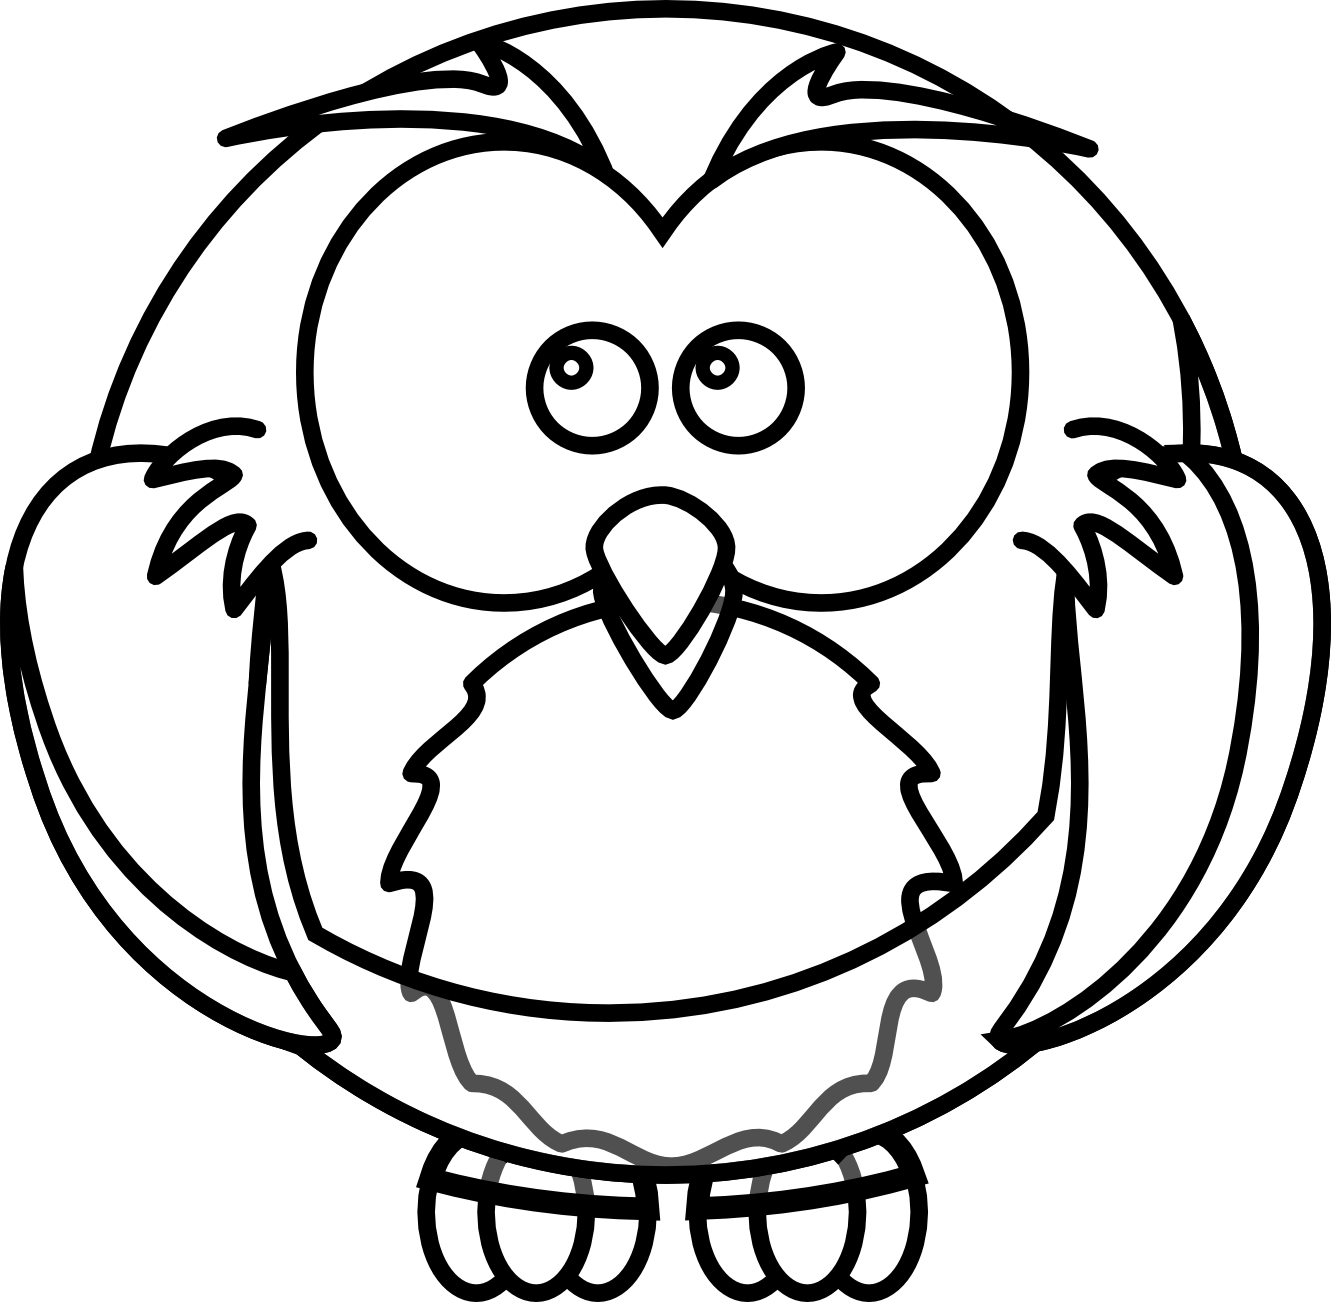 Wise Owl Clip Art Black And White Owl Clip Art Black And